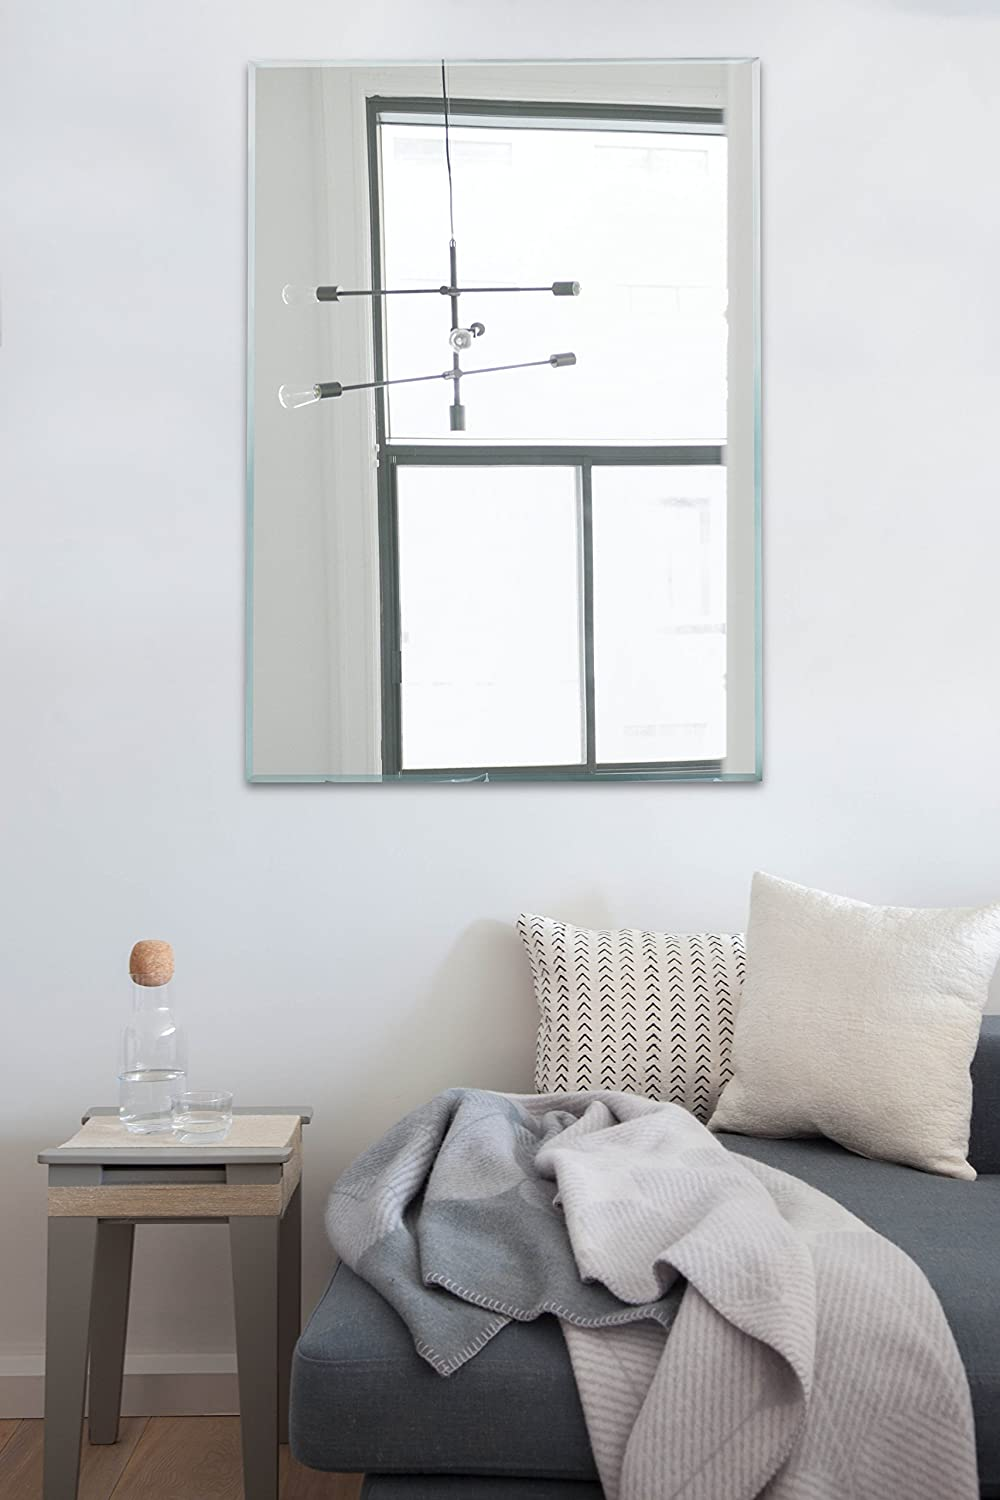 Large Rectangle Wall Mirror - 30 in x 40 in Frameless Mirror with Beveled Edge - Horizontal/Vertical Hang for Vanity, Bathroom, Bedroom - Hooks Included Light In The Dark LITD-MP3040